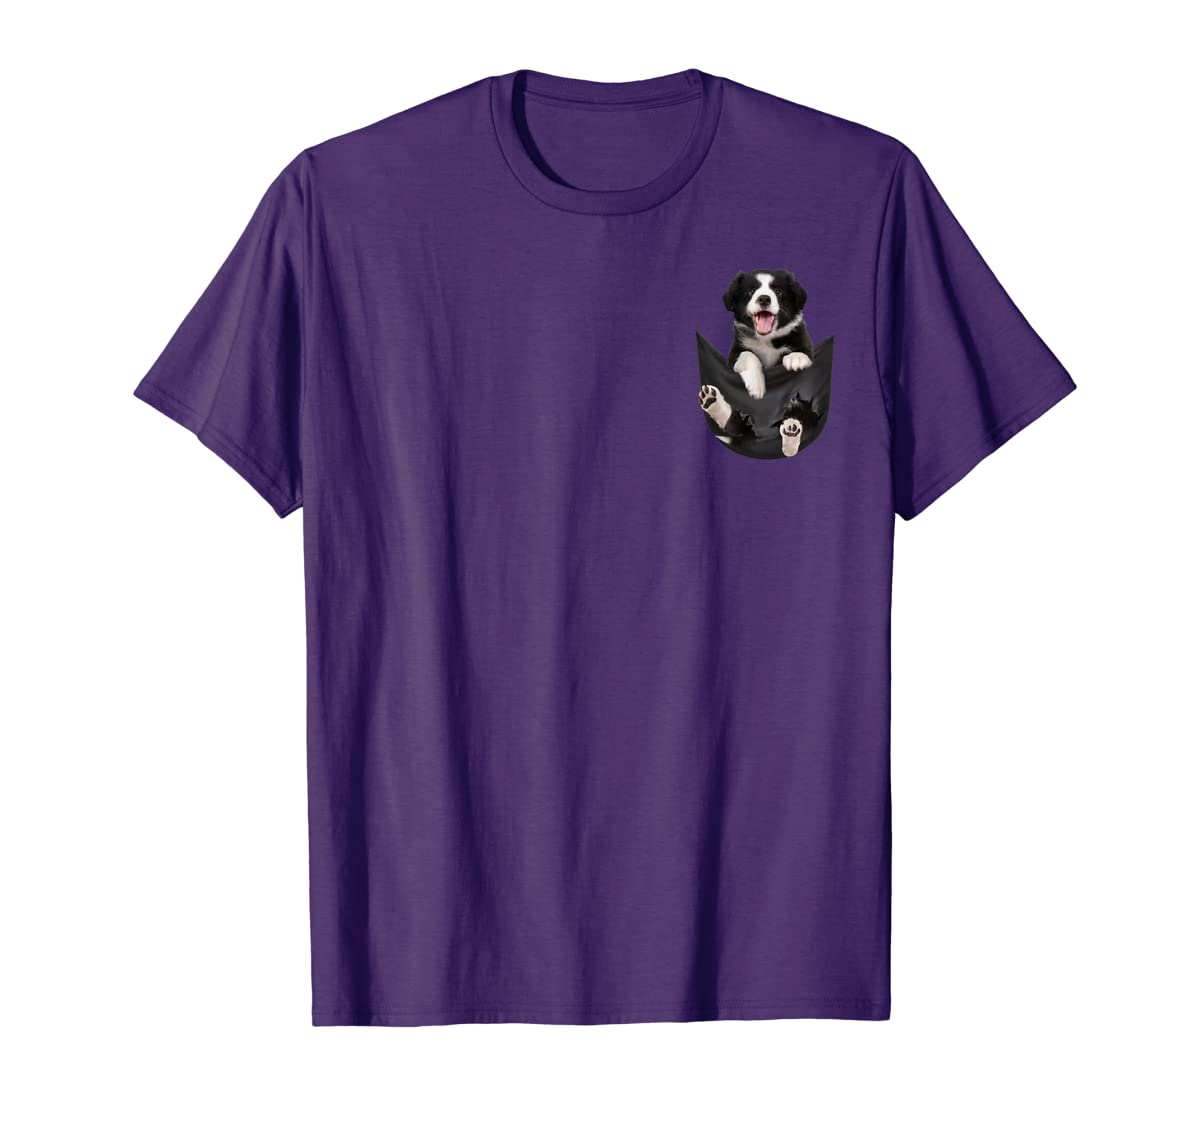 Gift dog funny cute shirt - Border Collie in pocket shirt T-Shirt-Men's T-Shirt-Purple